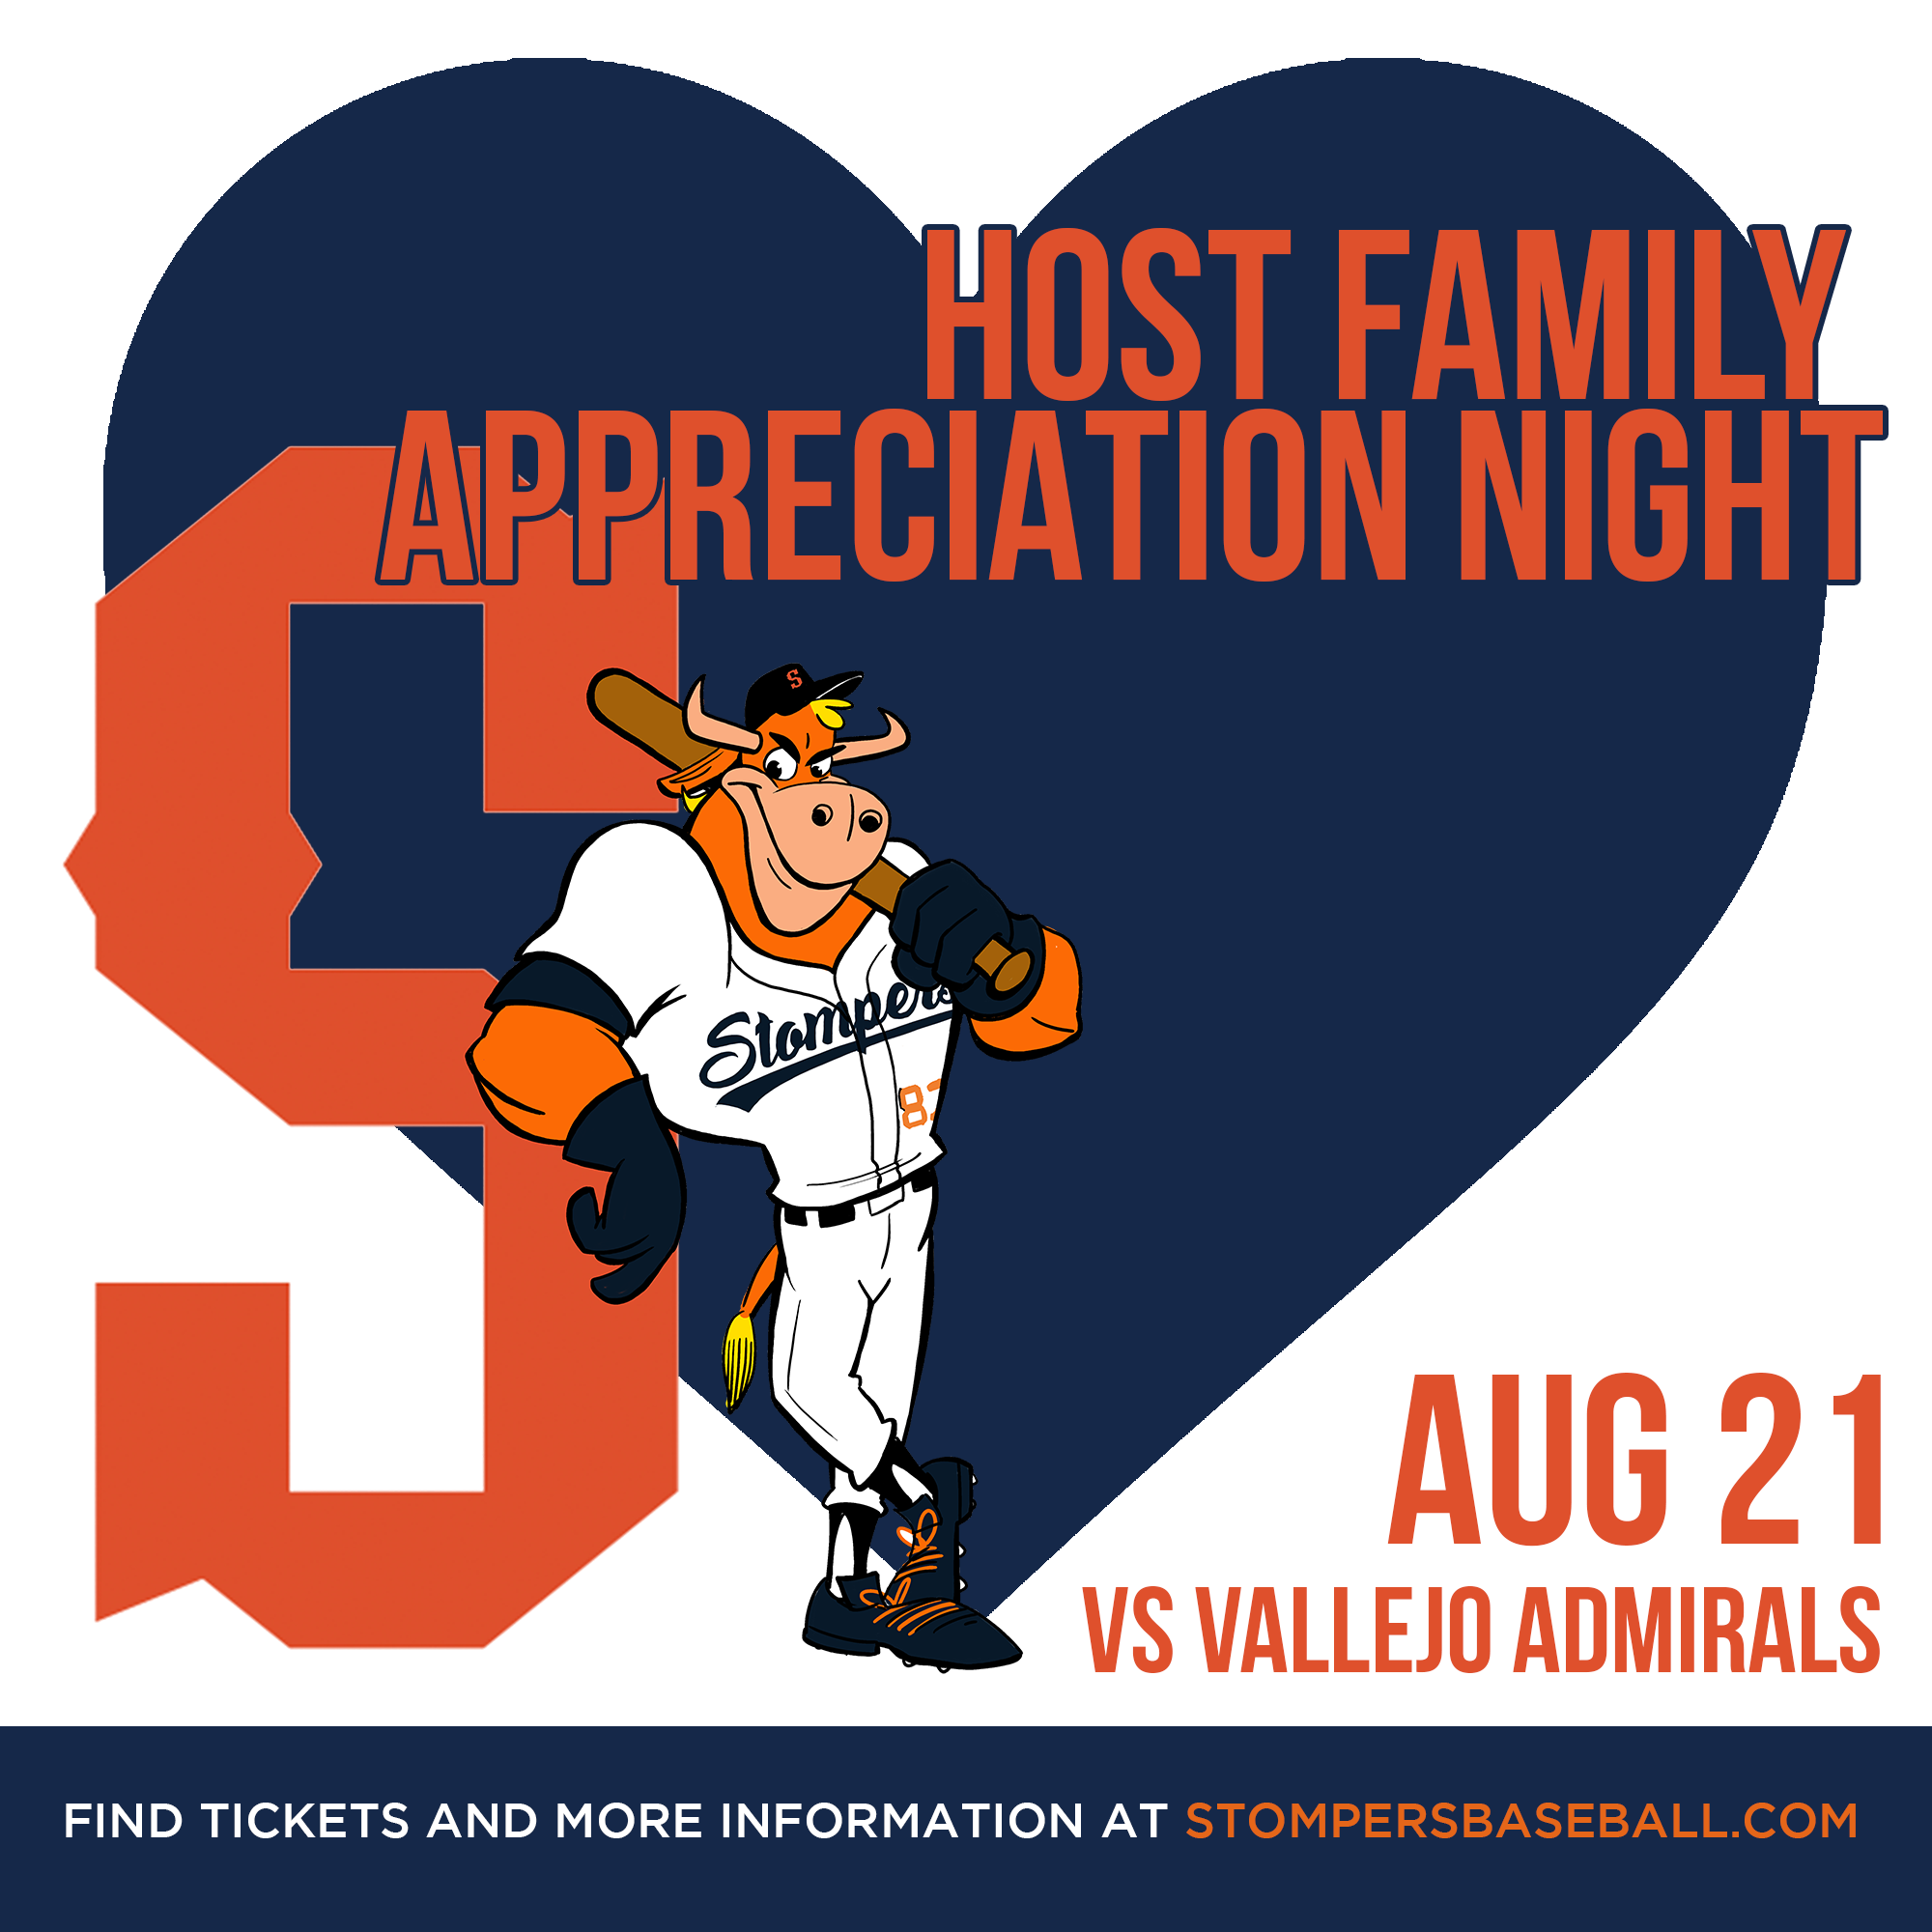 Aug 21: Host Family Appreciation Night - The Stompers wouldn't survive without the support of out host families. Come out as we honor them!